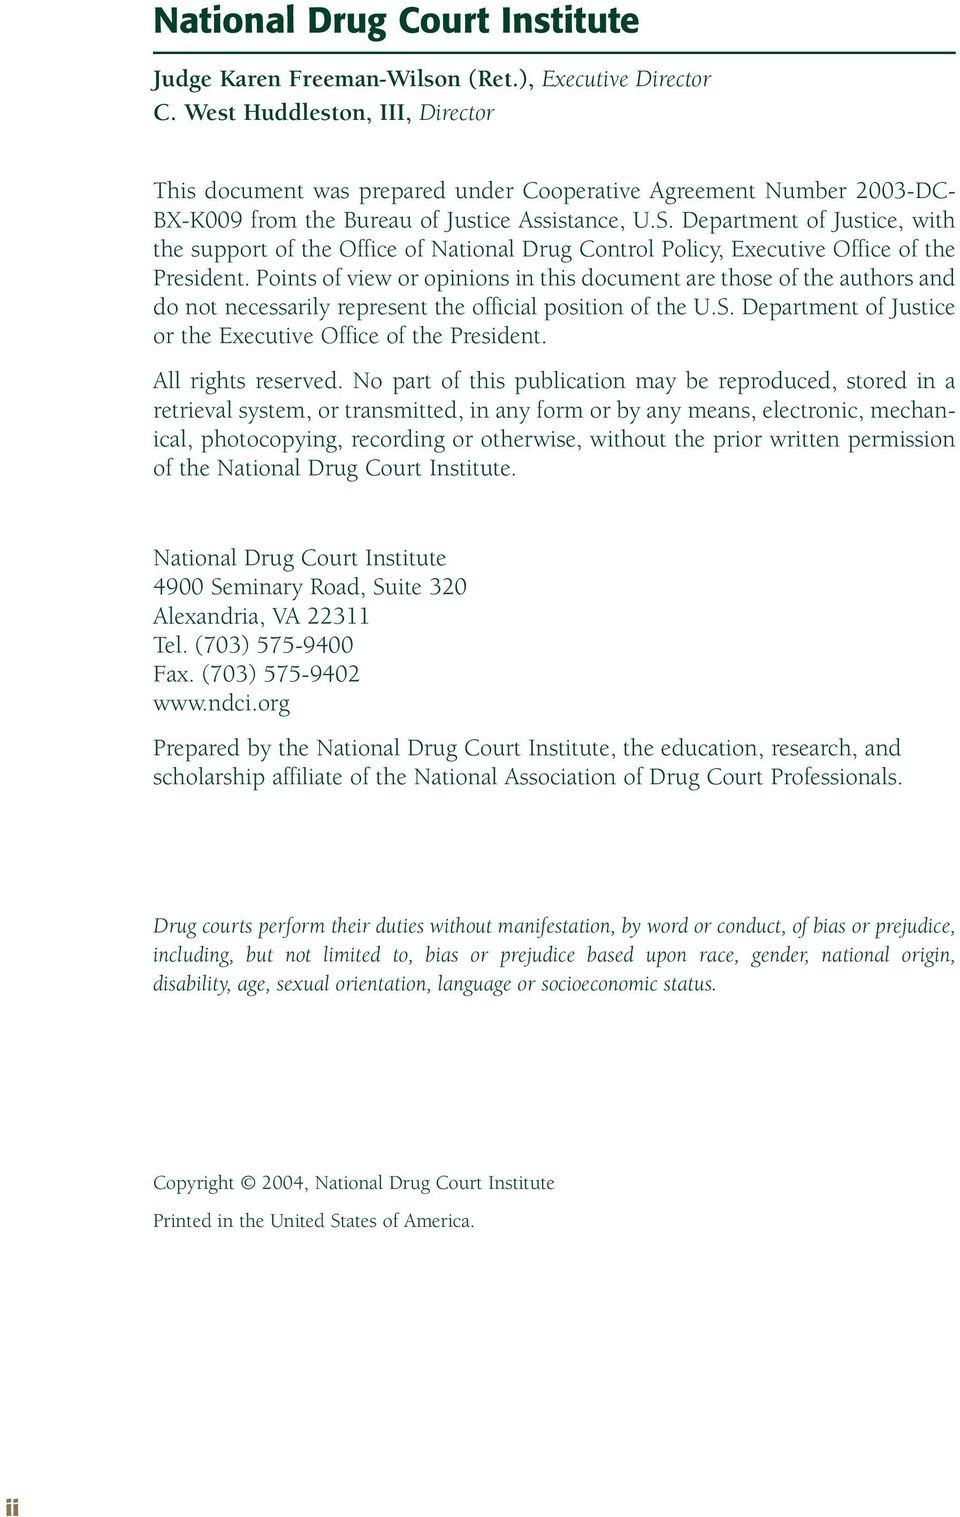 Department of Justice, with the support of the Office of National Drug Control Policy, Executive Office of the President.